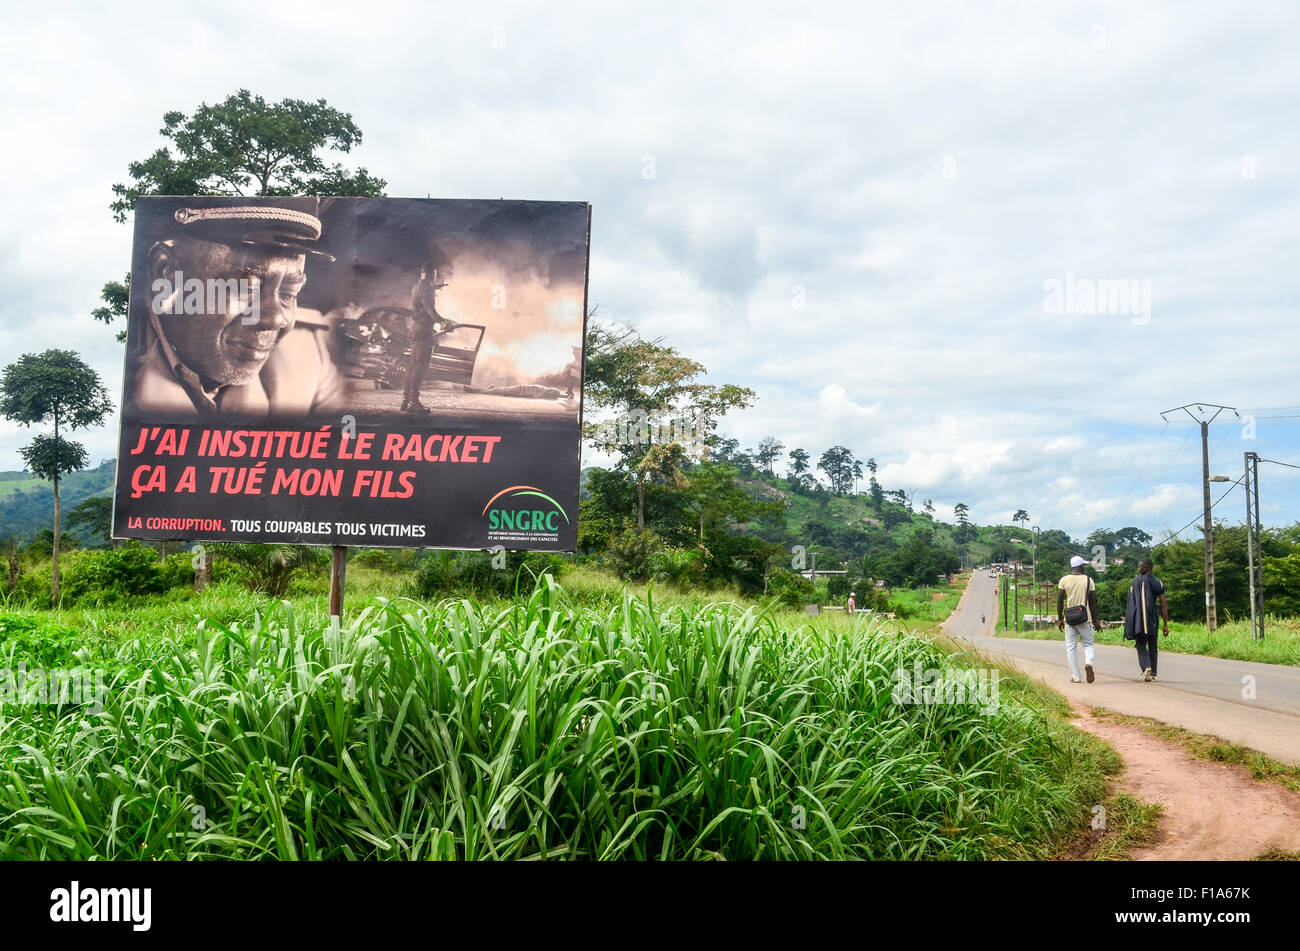 Campaign against racket and corruption, Ivory Coast, Africa - Stock Image